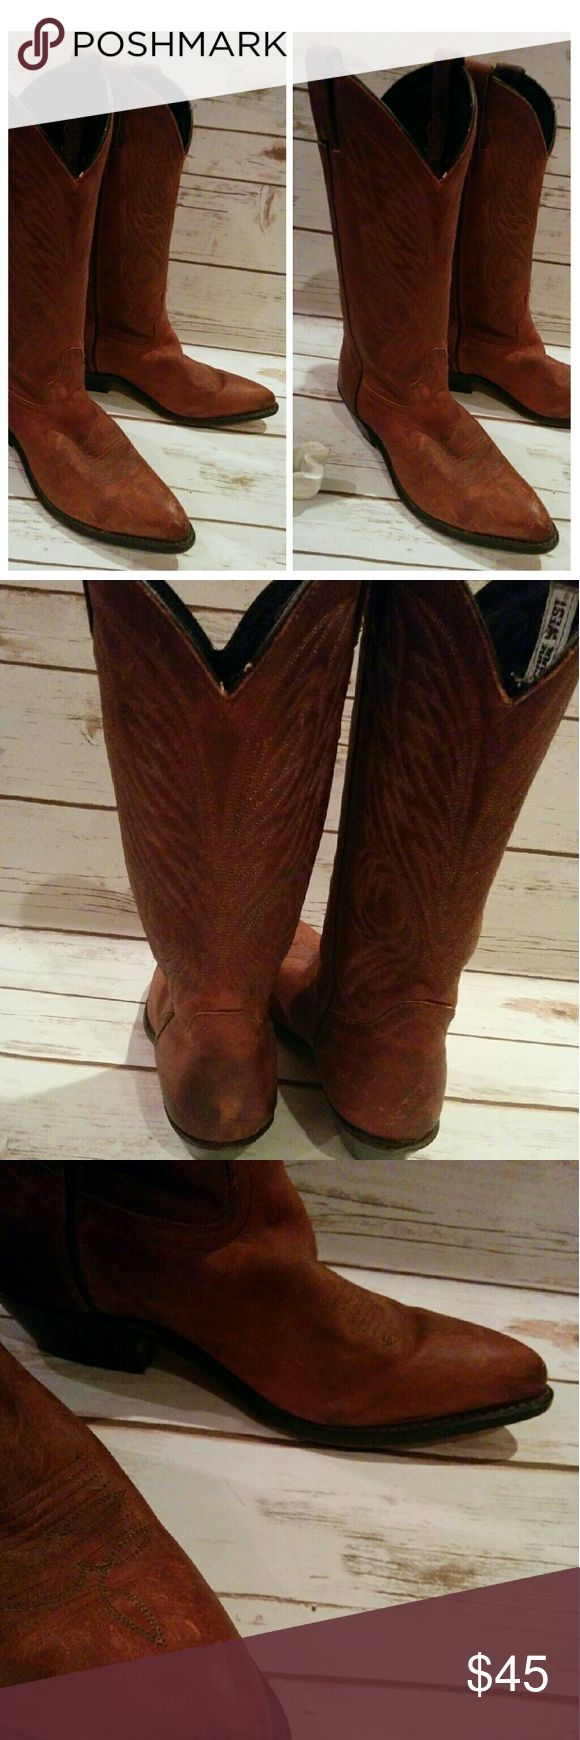 Vintage cowboy boots Beautifully worn in tan leather boots. Some scuffing and wear but this just contributes to the look of the boots. Code West Vintage Shoes Heeled Boots